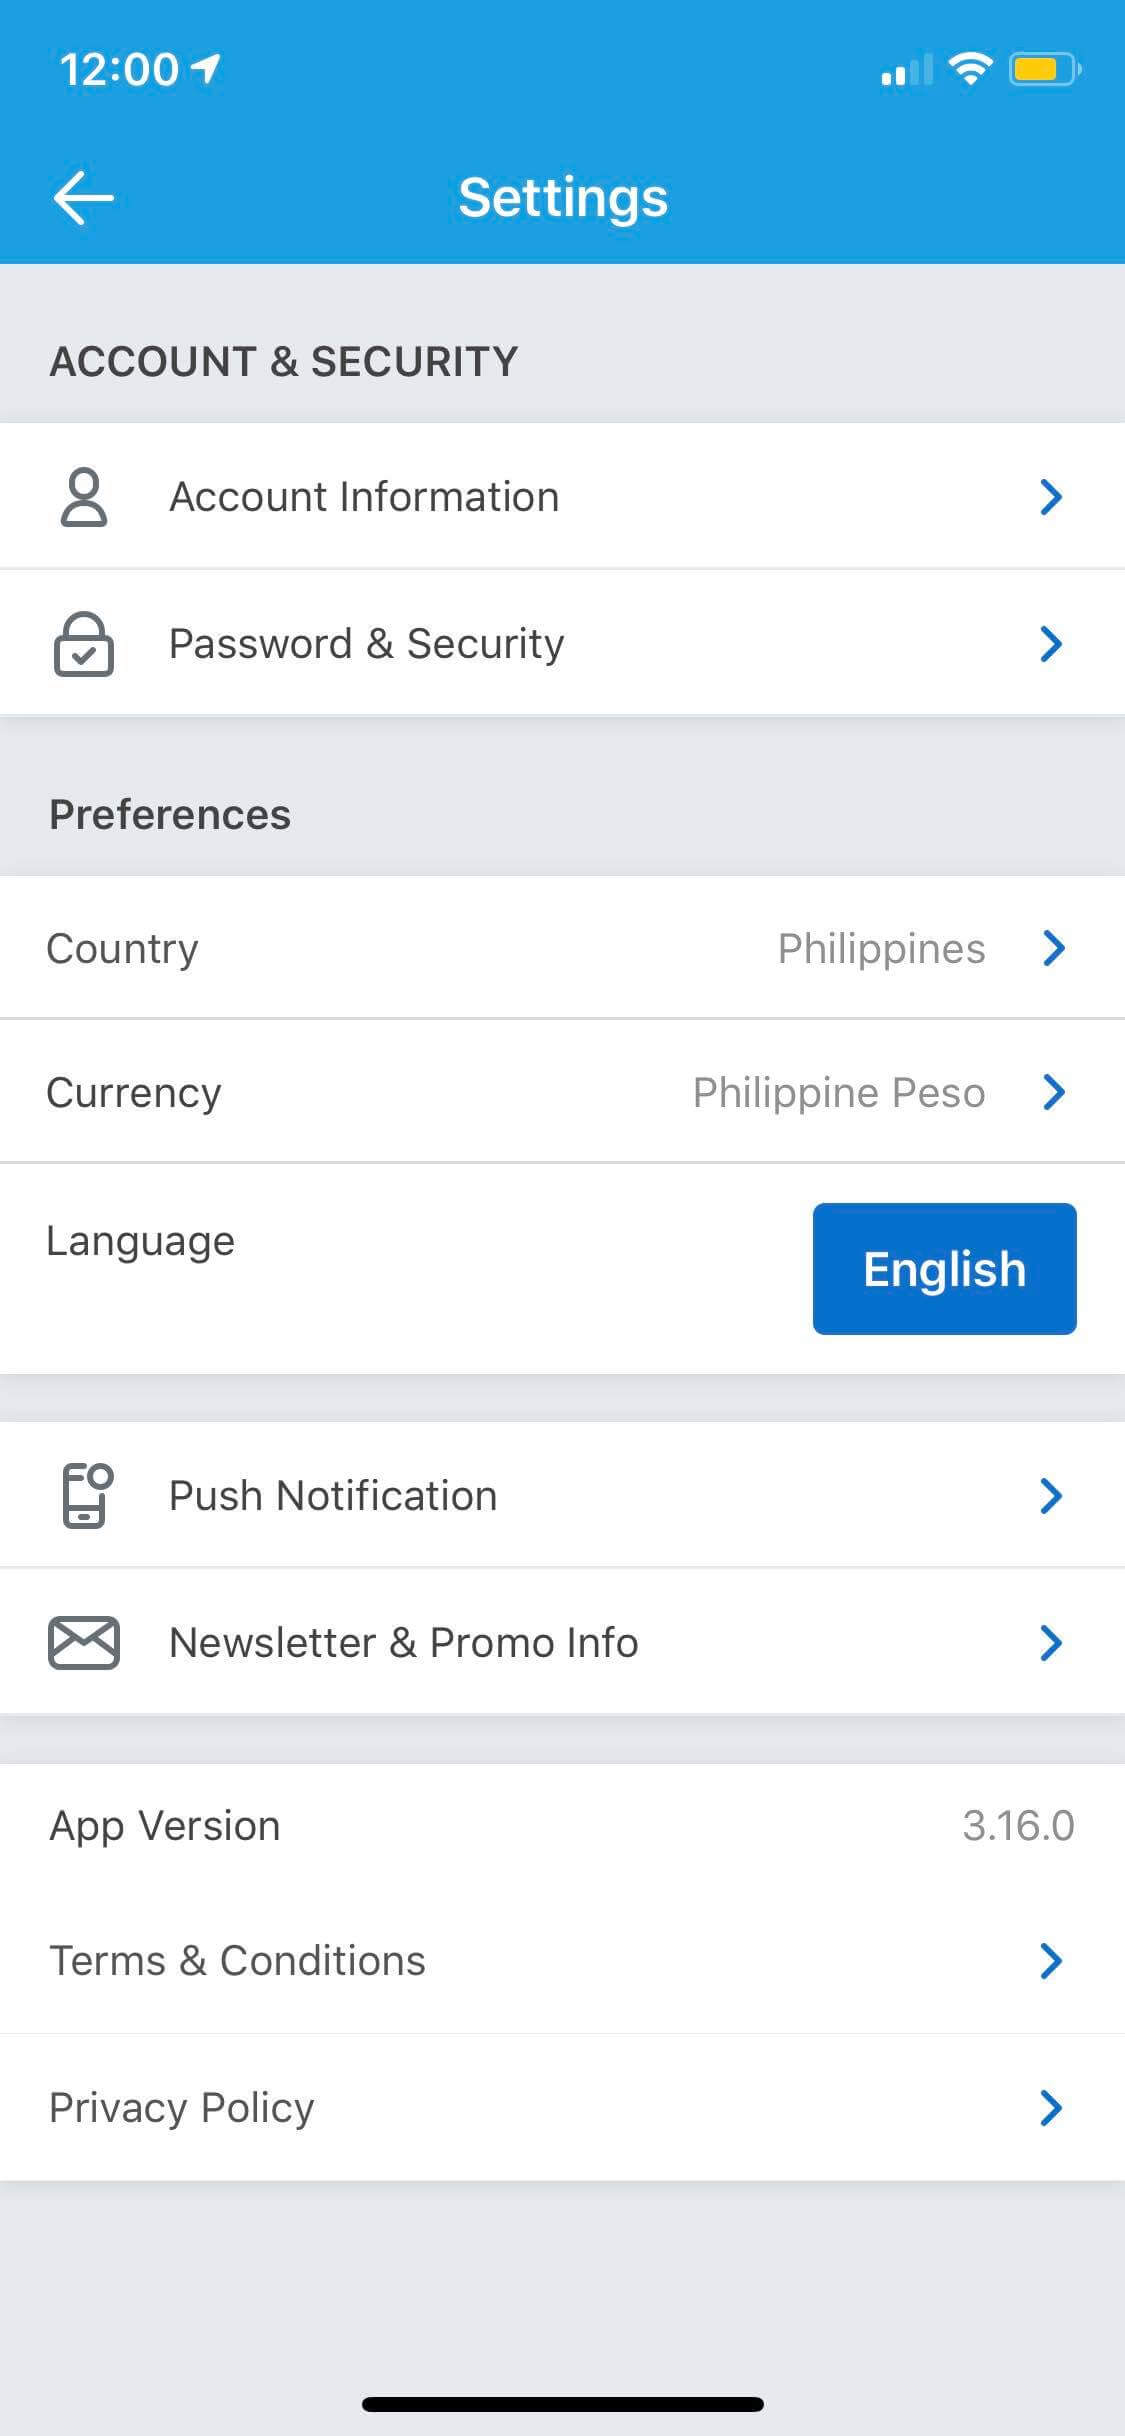 Settings on iOS by Traveloka from UIGarage